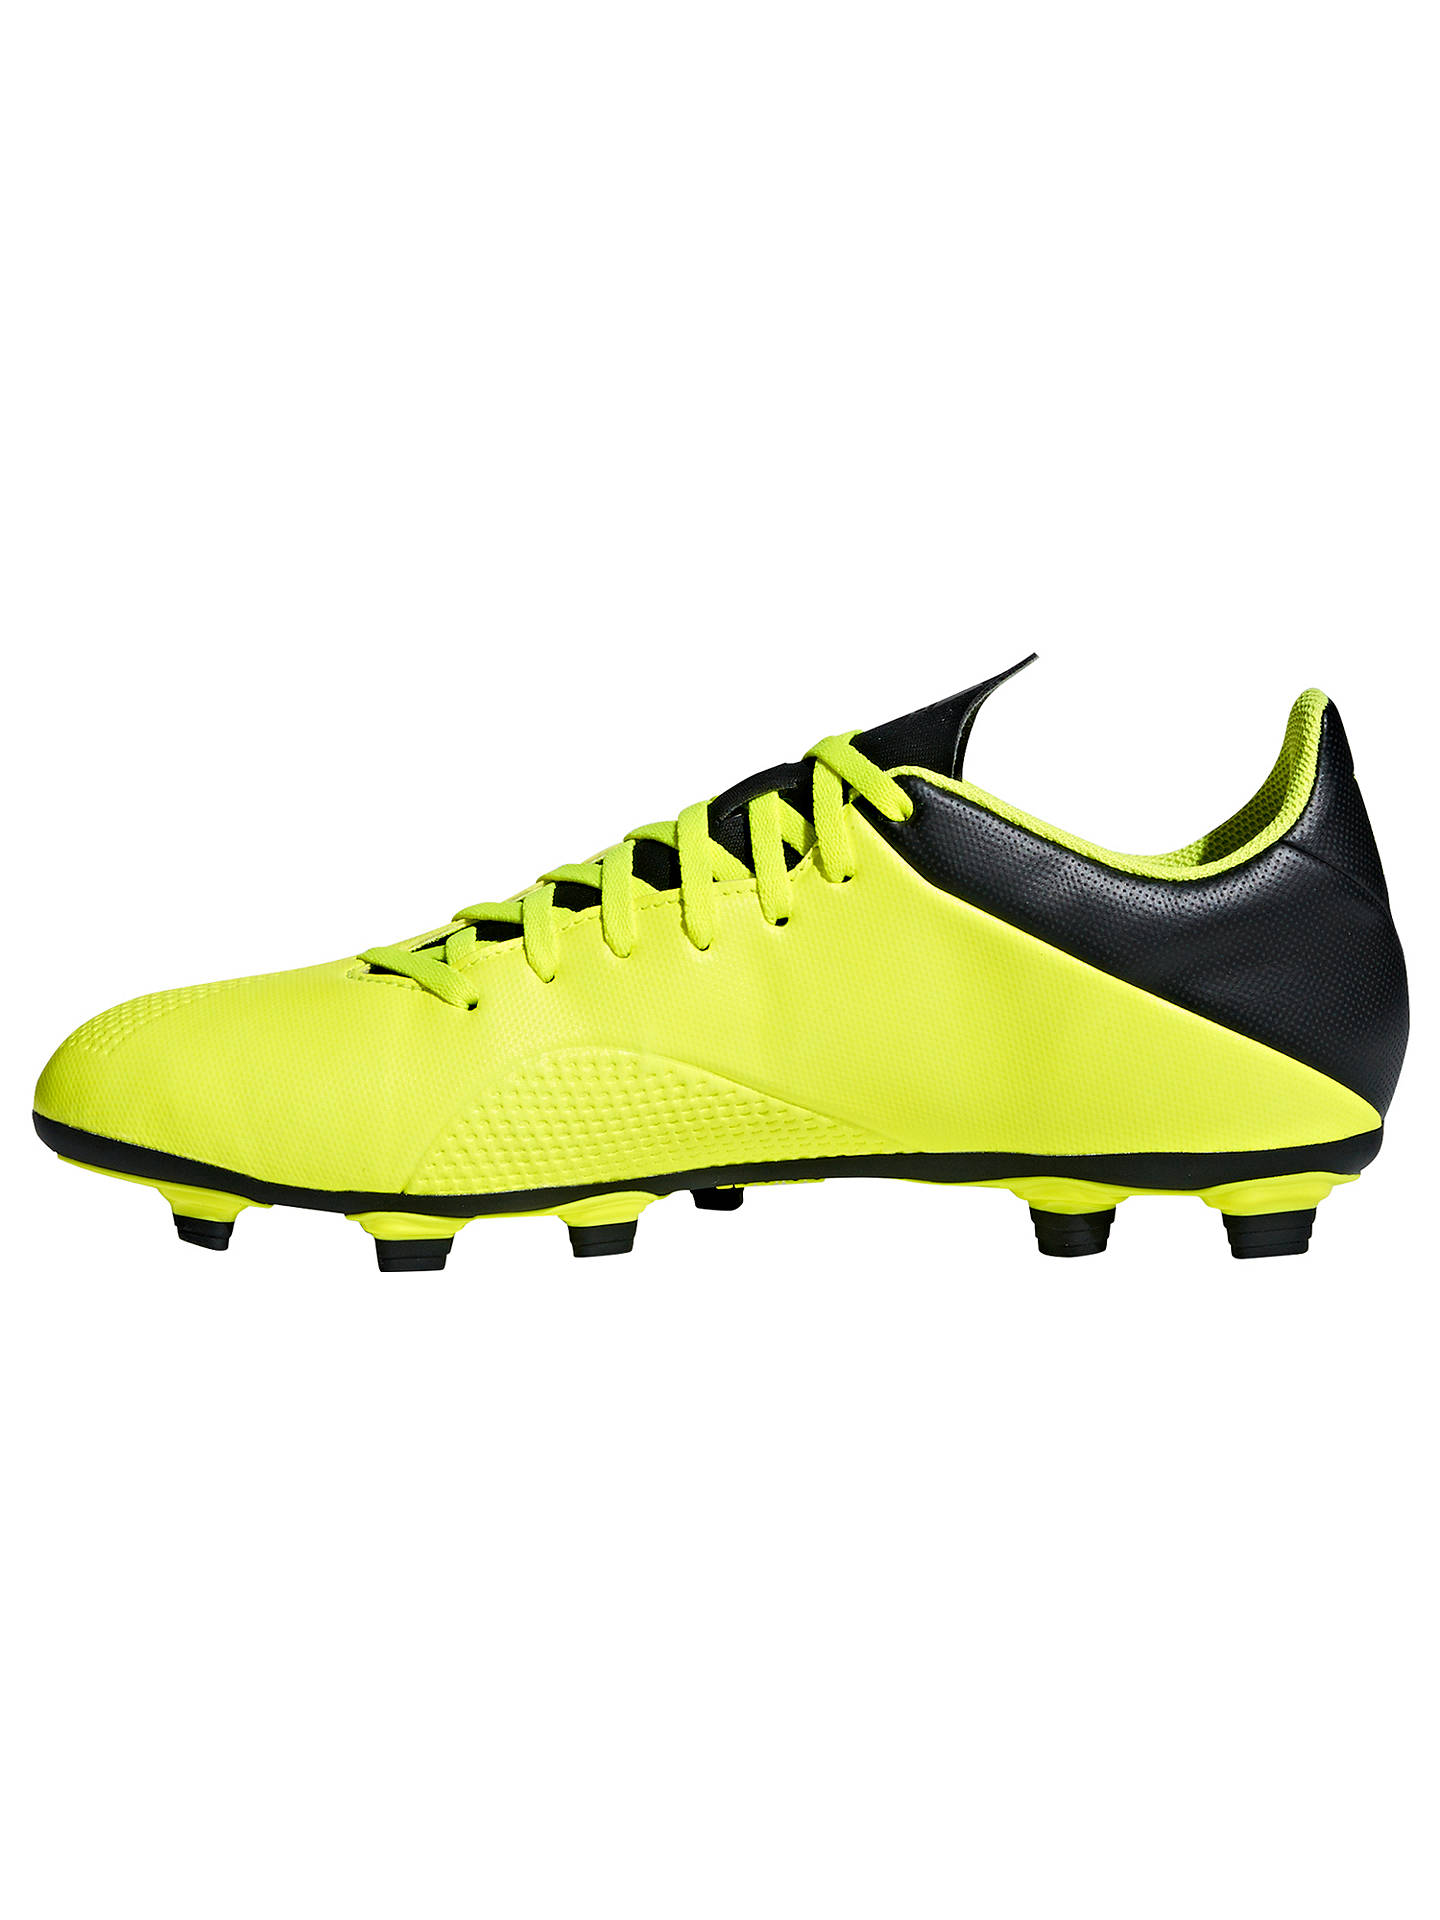 Buy adidas X 18.4 FG Football Boots, Solar Yellow/Core Black, 8 Online at johnlewis.com